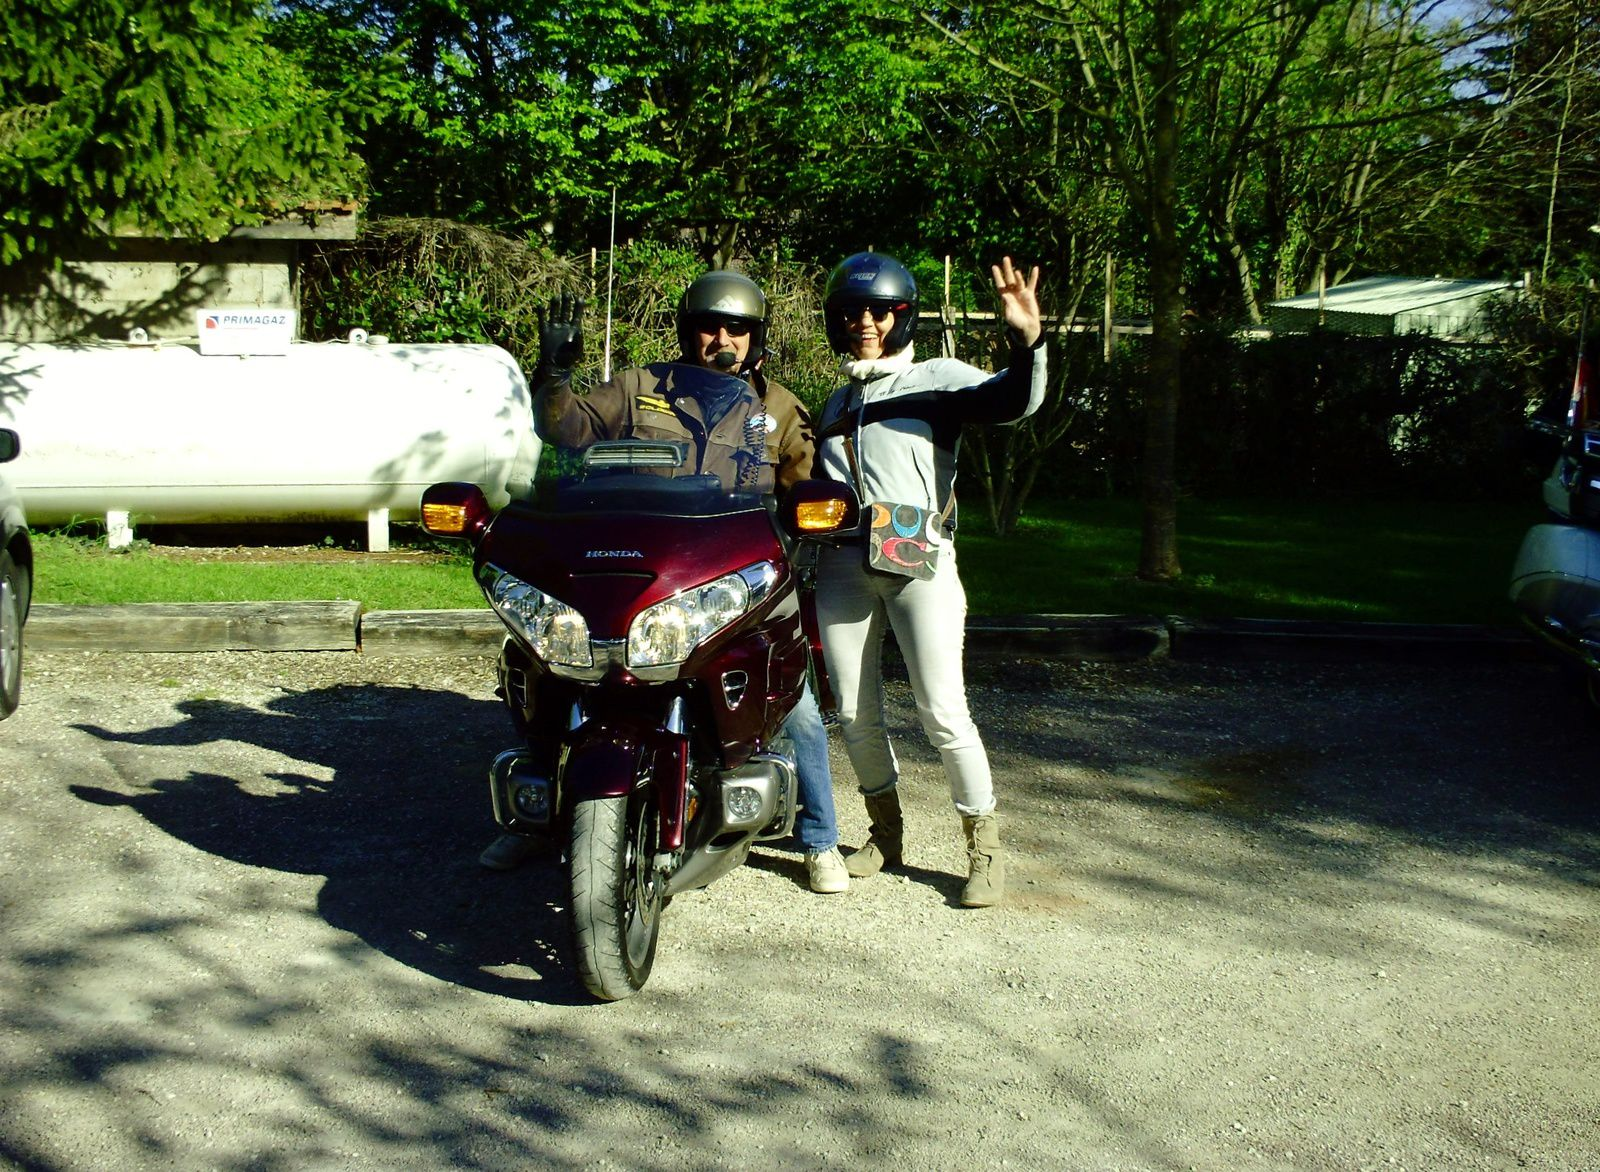 Goldwing - Week-end de 4 jours en Champagne en moto 2/4